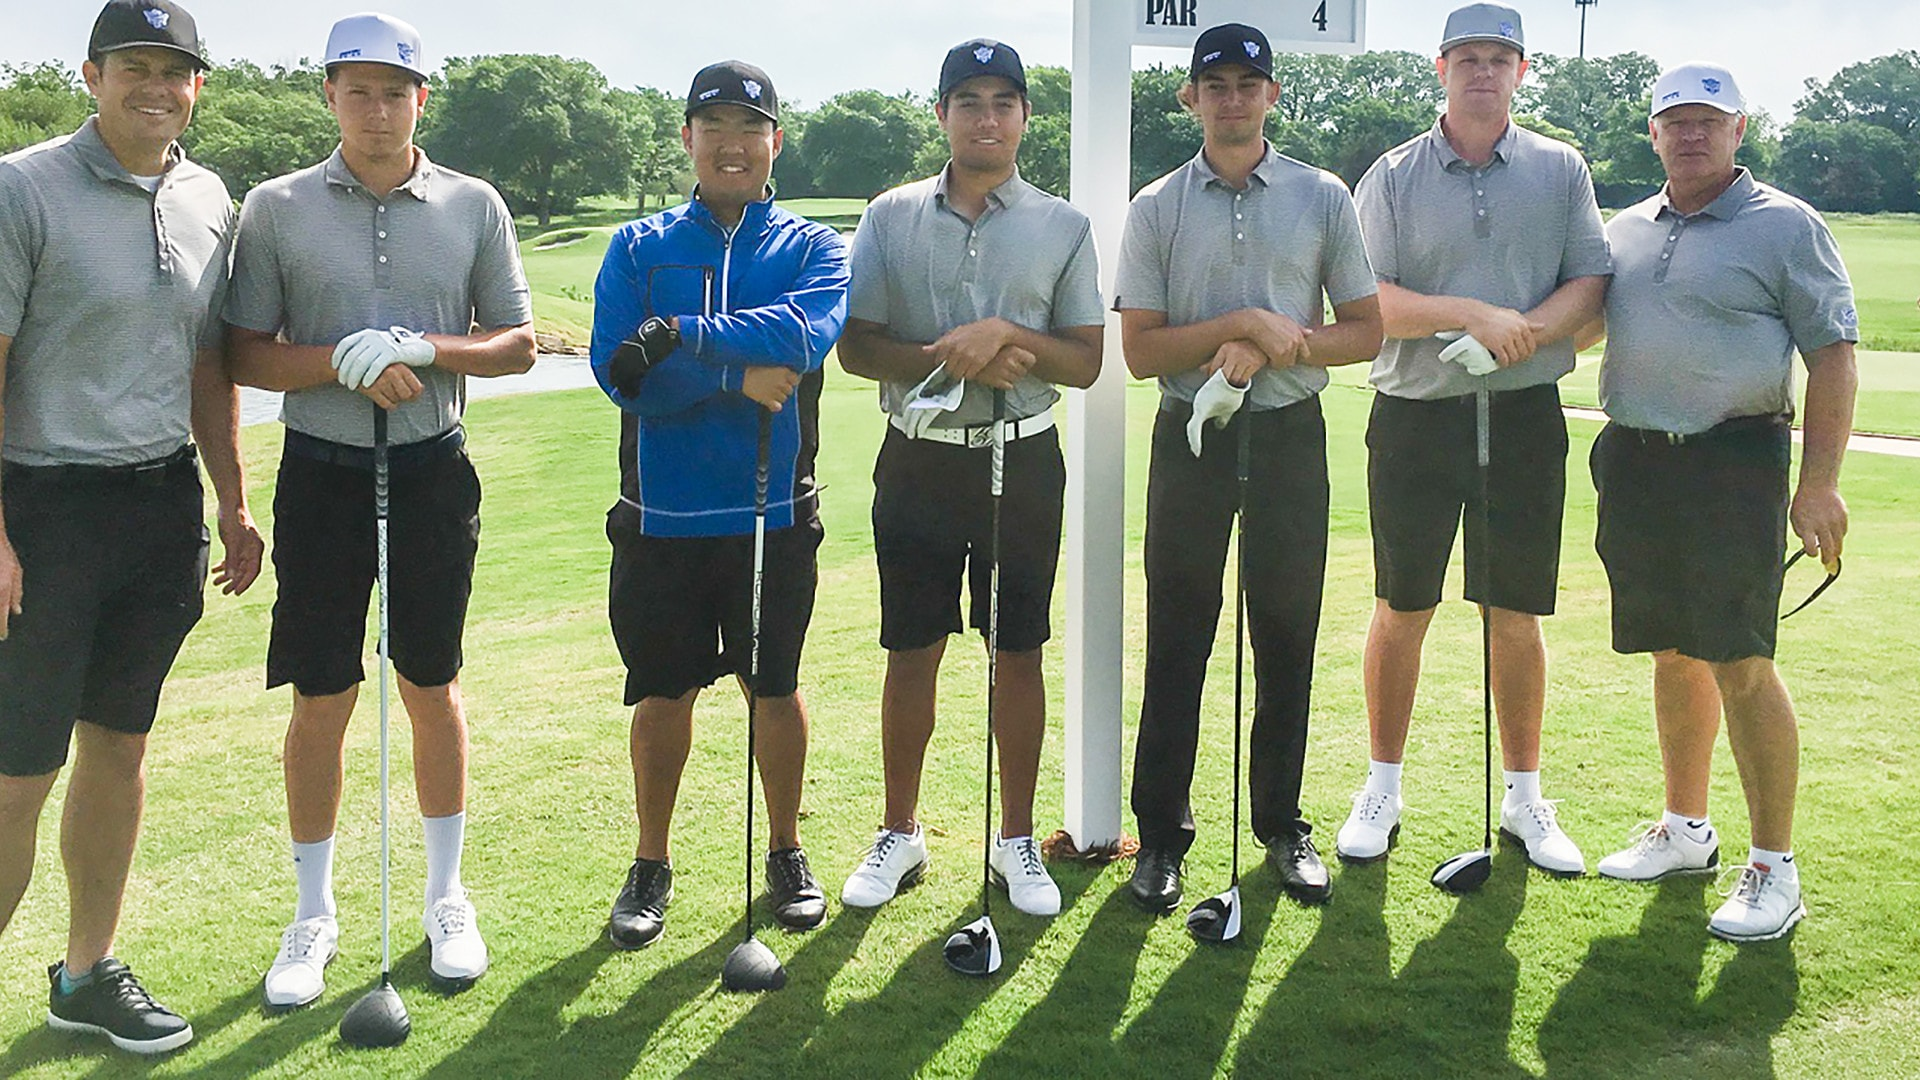 BYU men's golf team